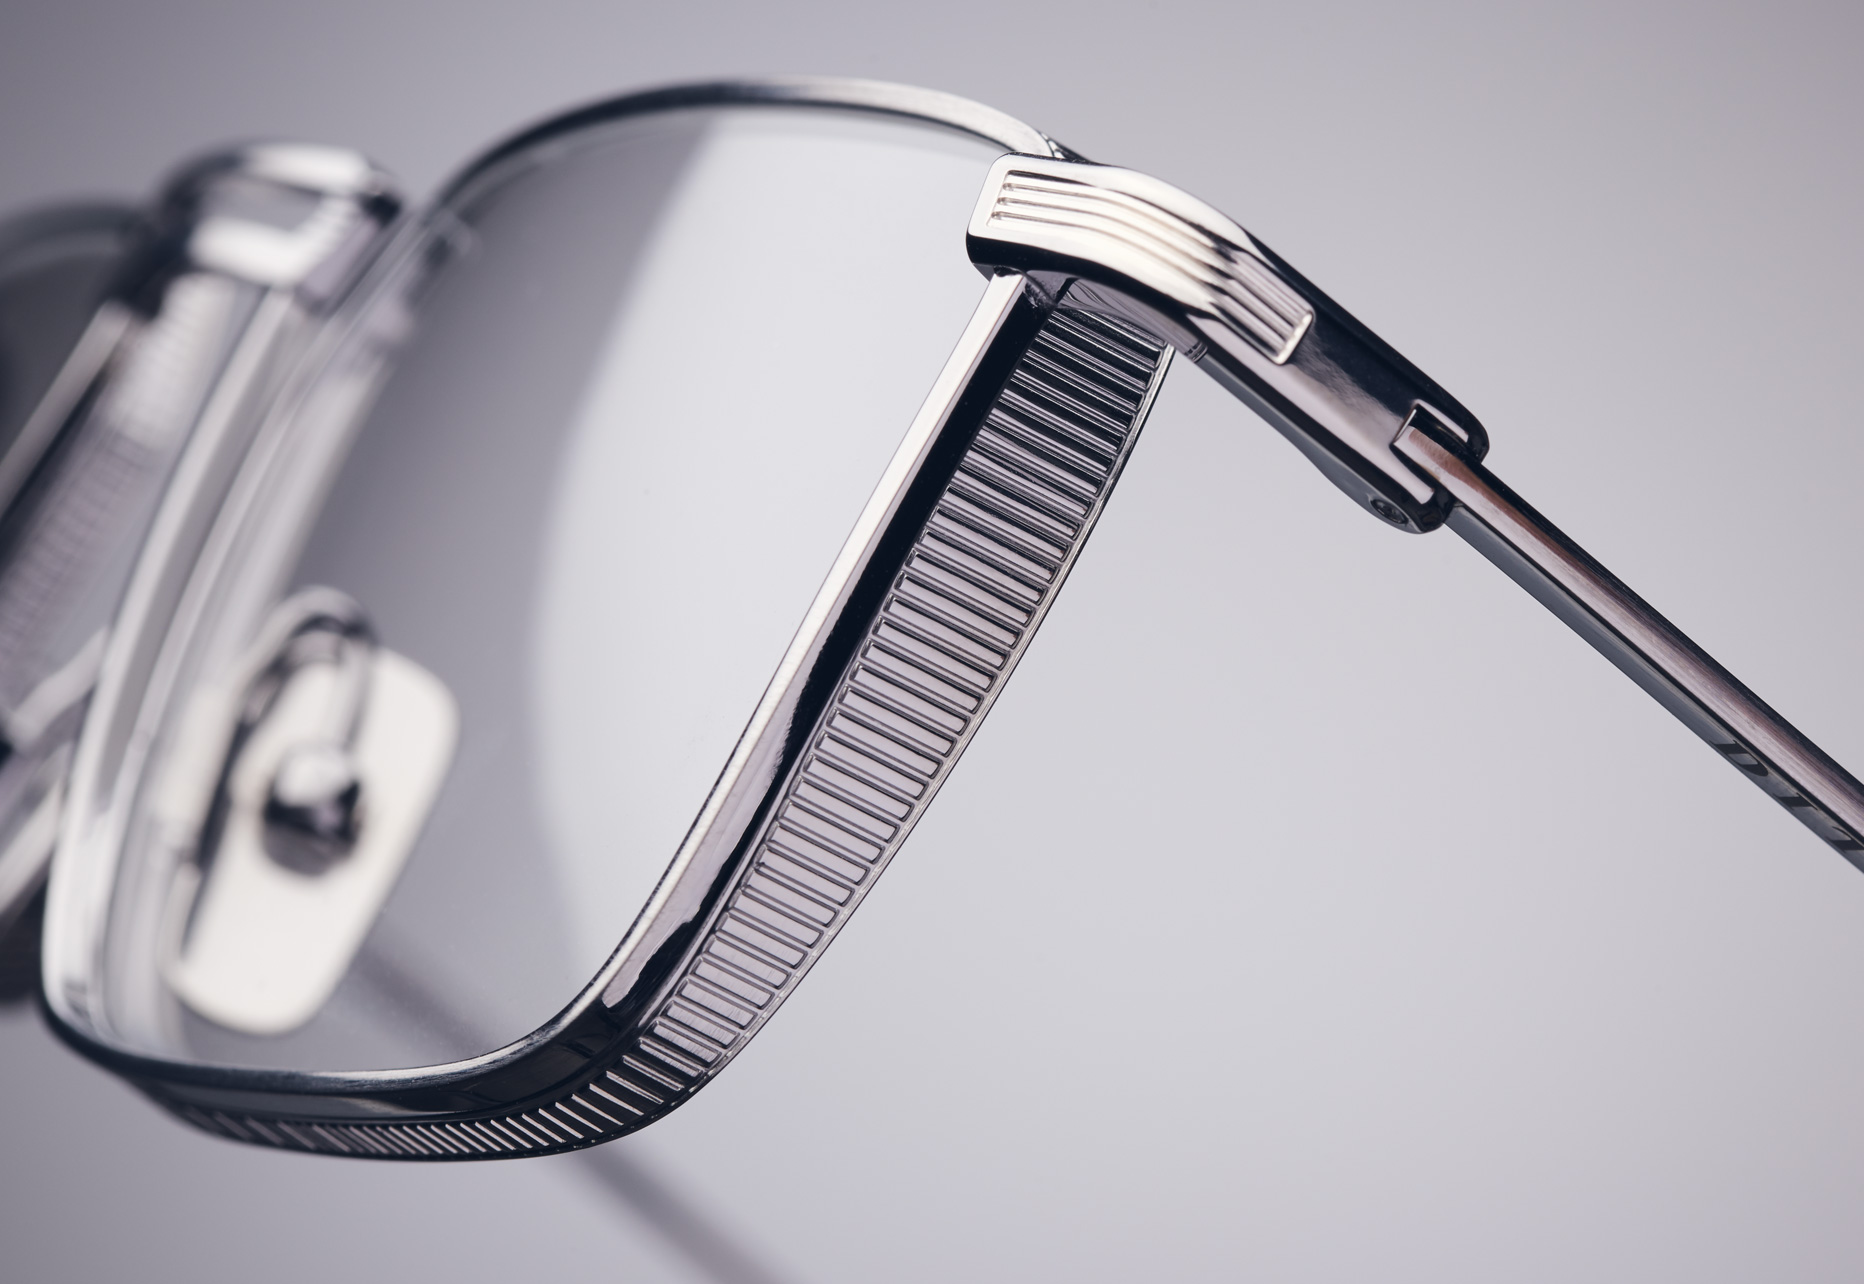 5.5 MM TITANIUM LENS RIM WITH PRESSED DETAIL AROUND THE ENTIRE CIRCUMFERENCE